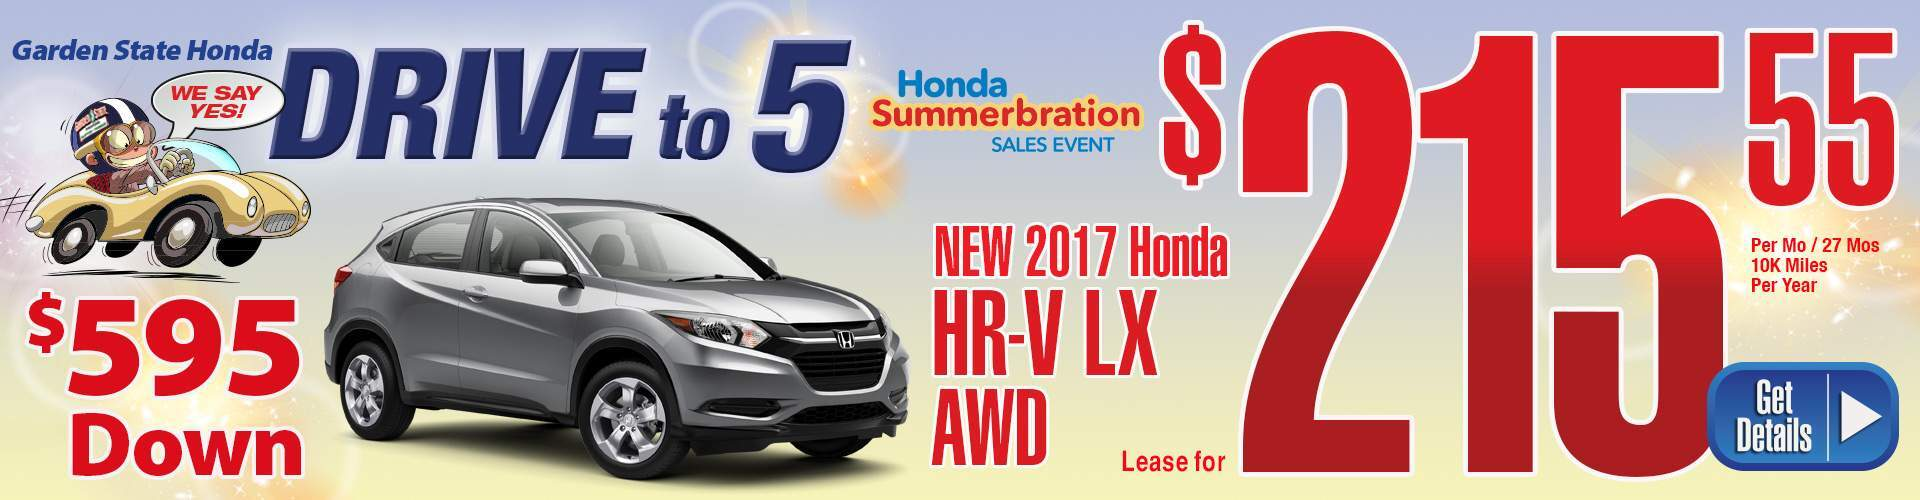 New Honda Deals In Clifton And Garden State Honda 2018